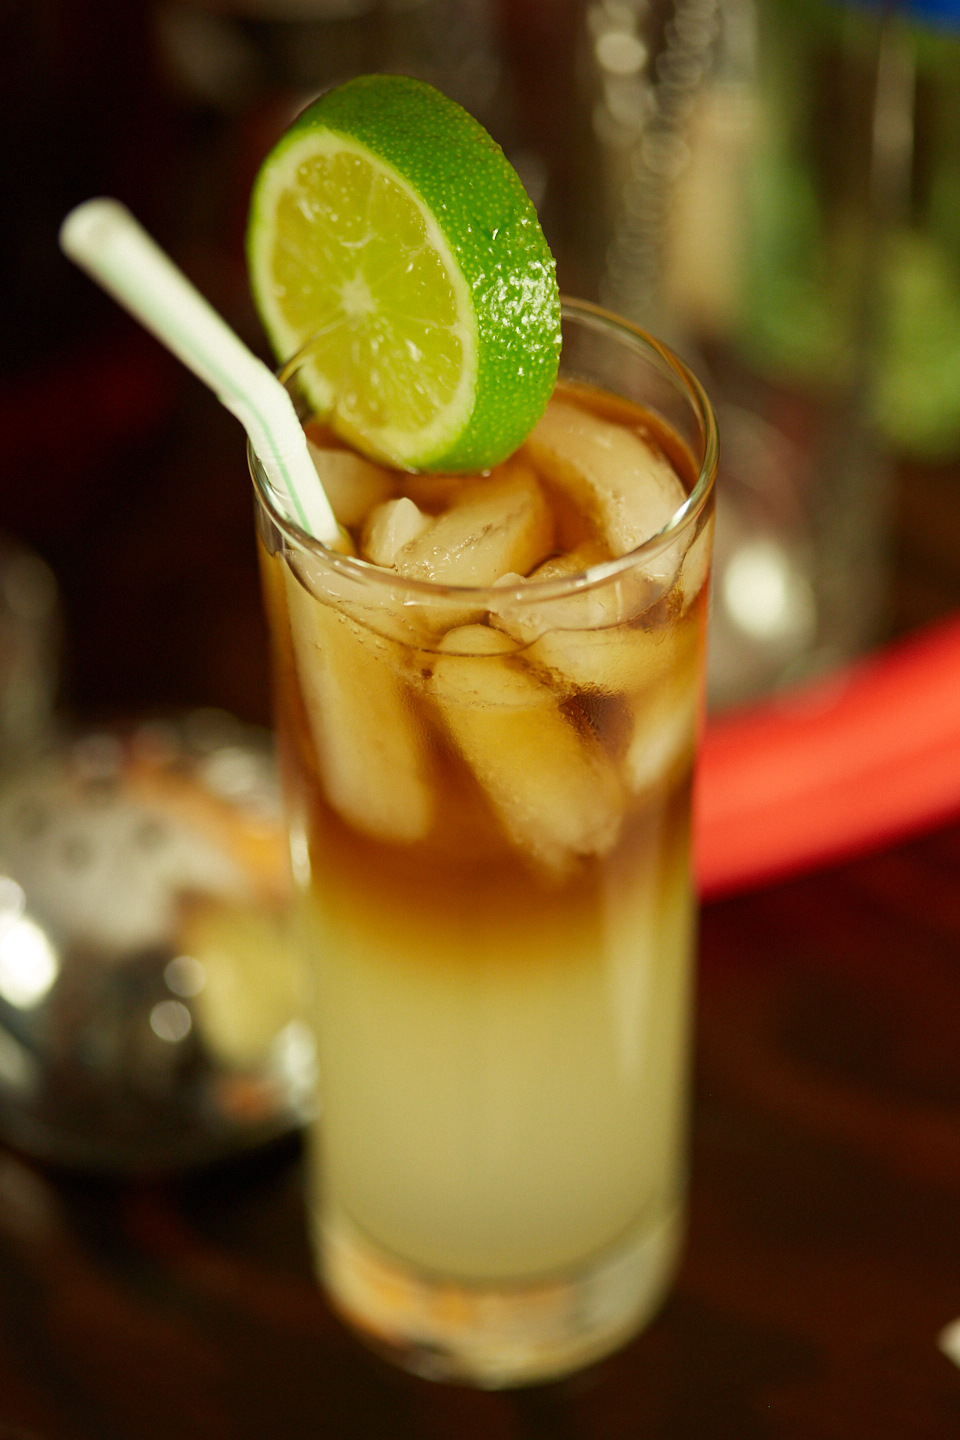 Dark 'n stormy - Hailing from Bermuda, this ginger heavy drink is just as delicious as it's name is ominous. Drink up and batten down the hatches!